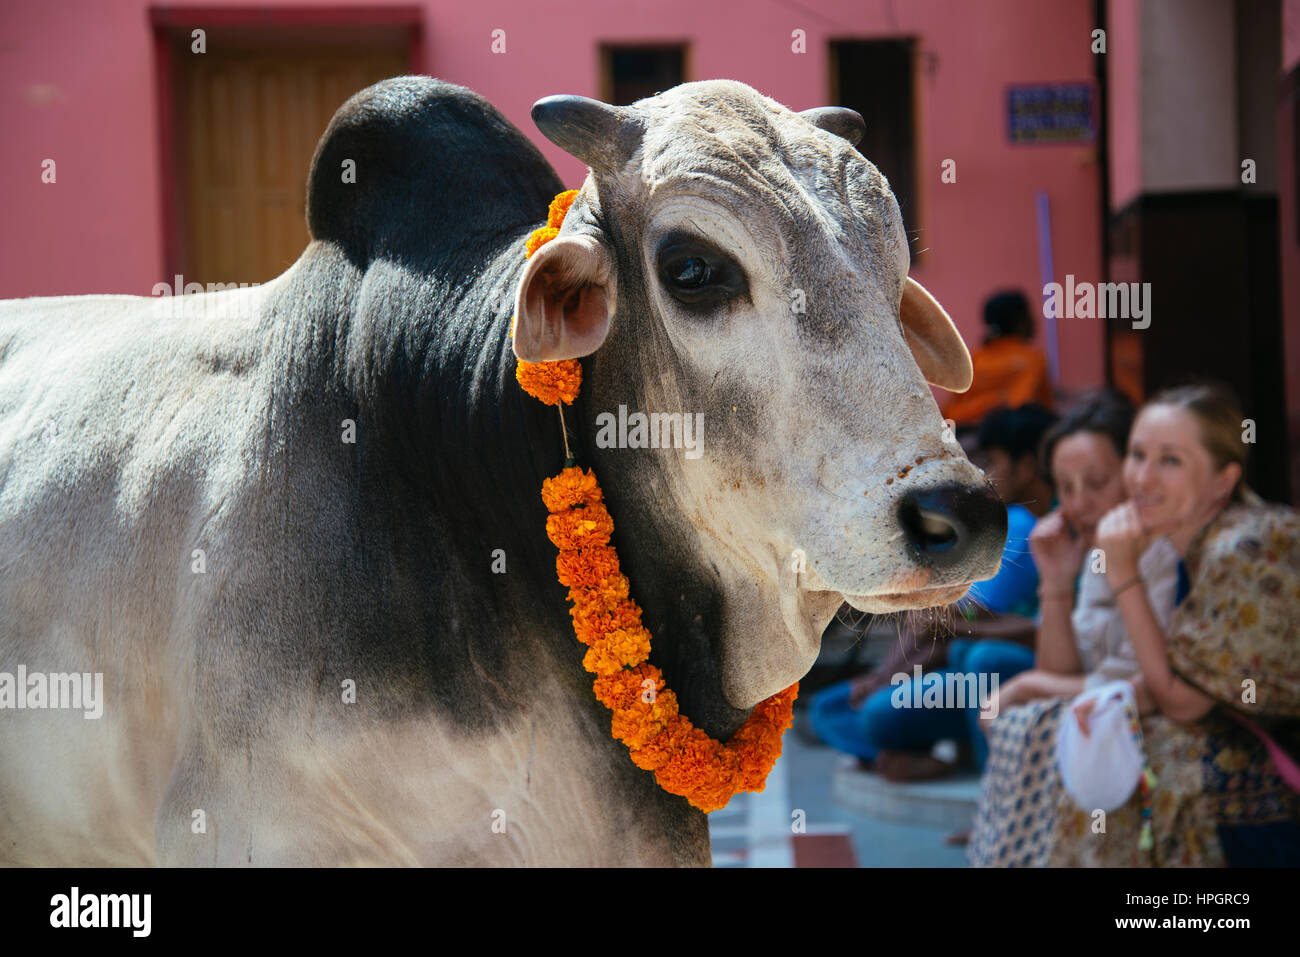 Temple cow and devotees, Puri, India. Stock Photo